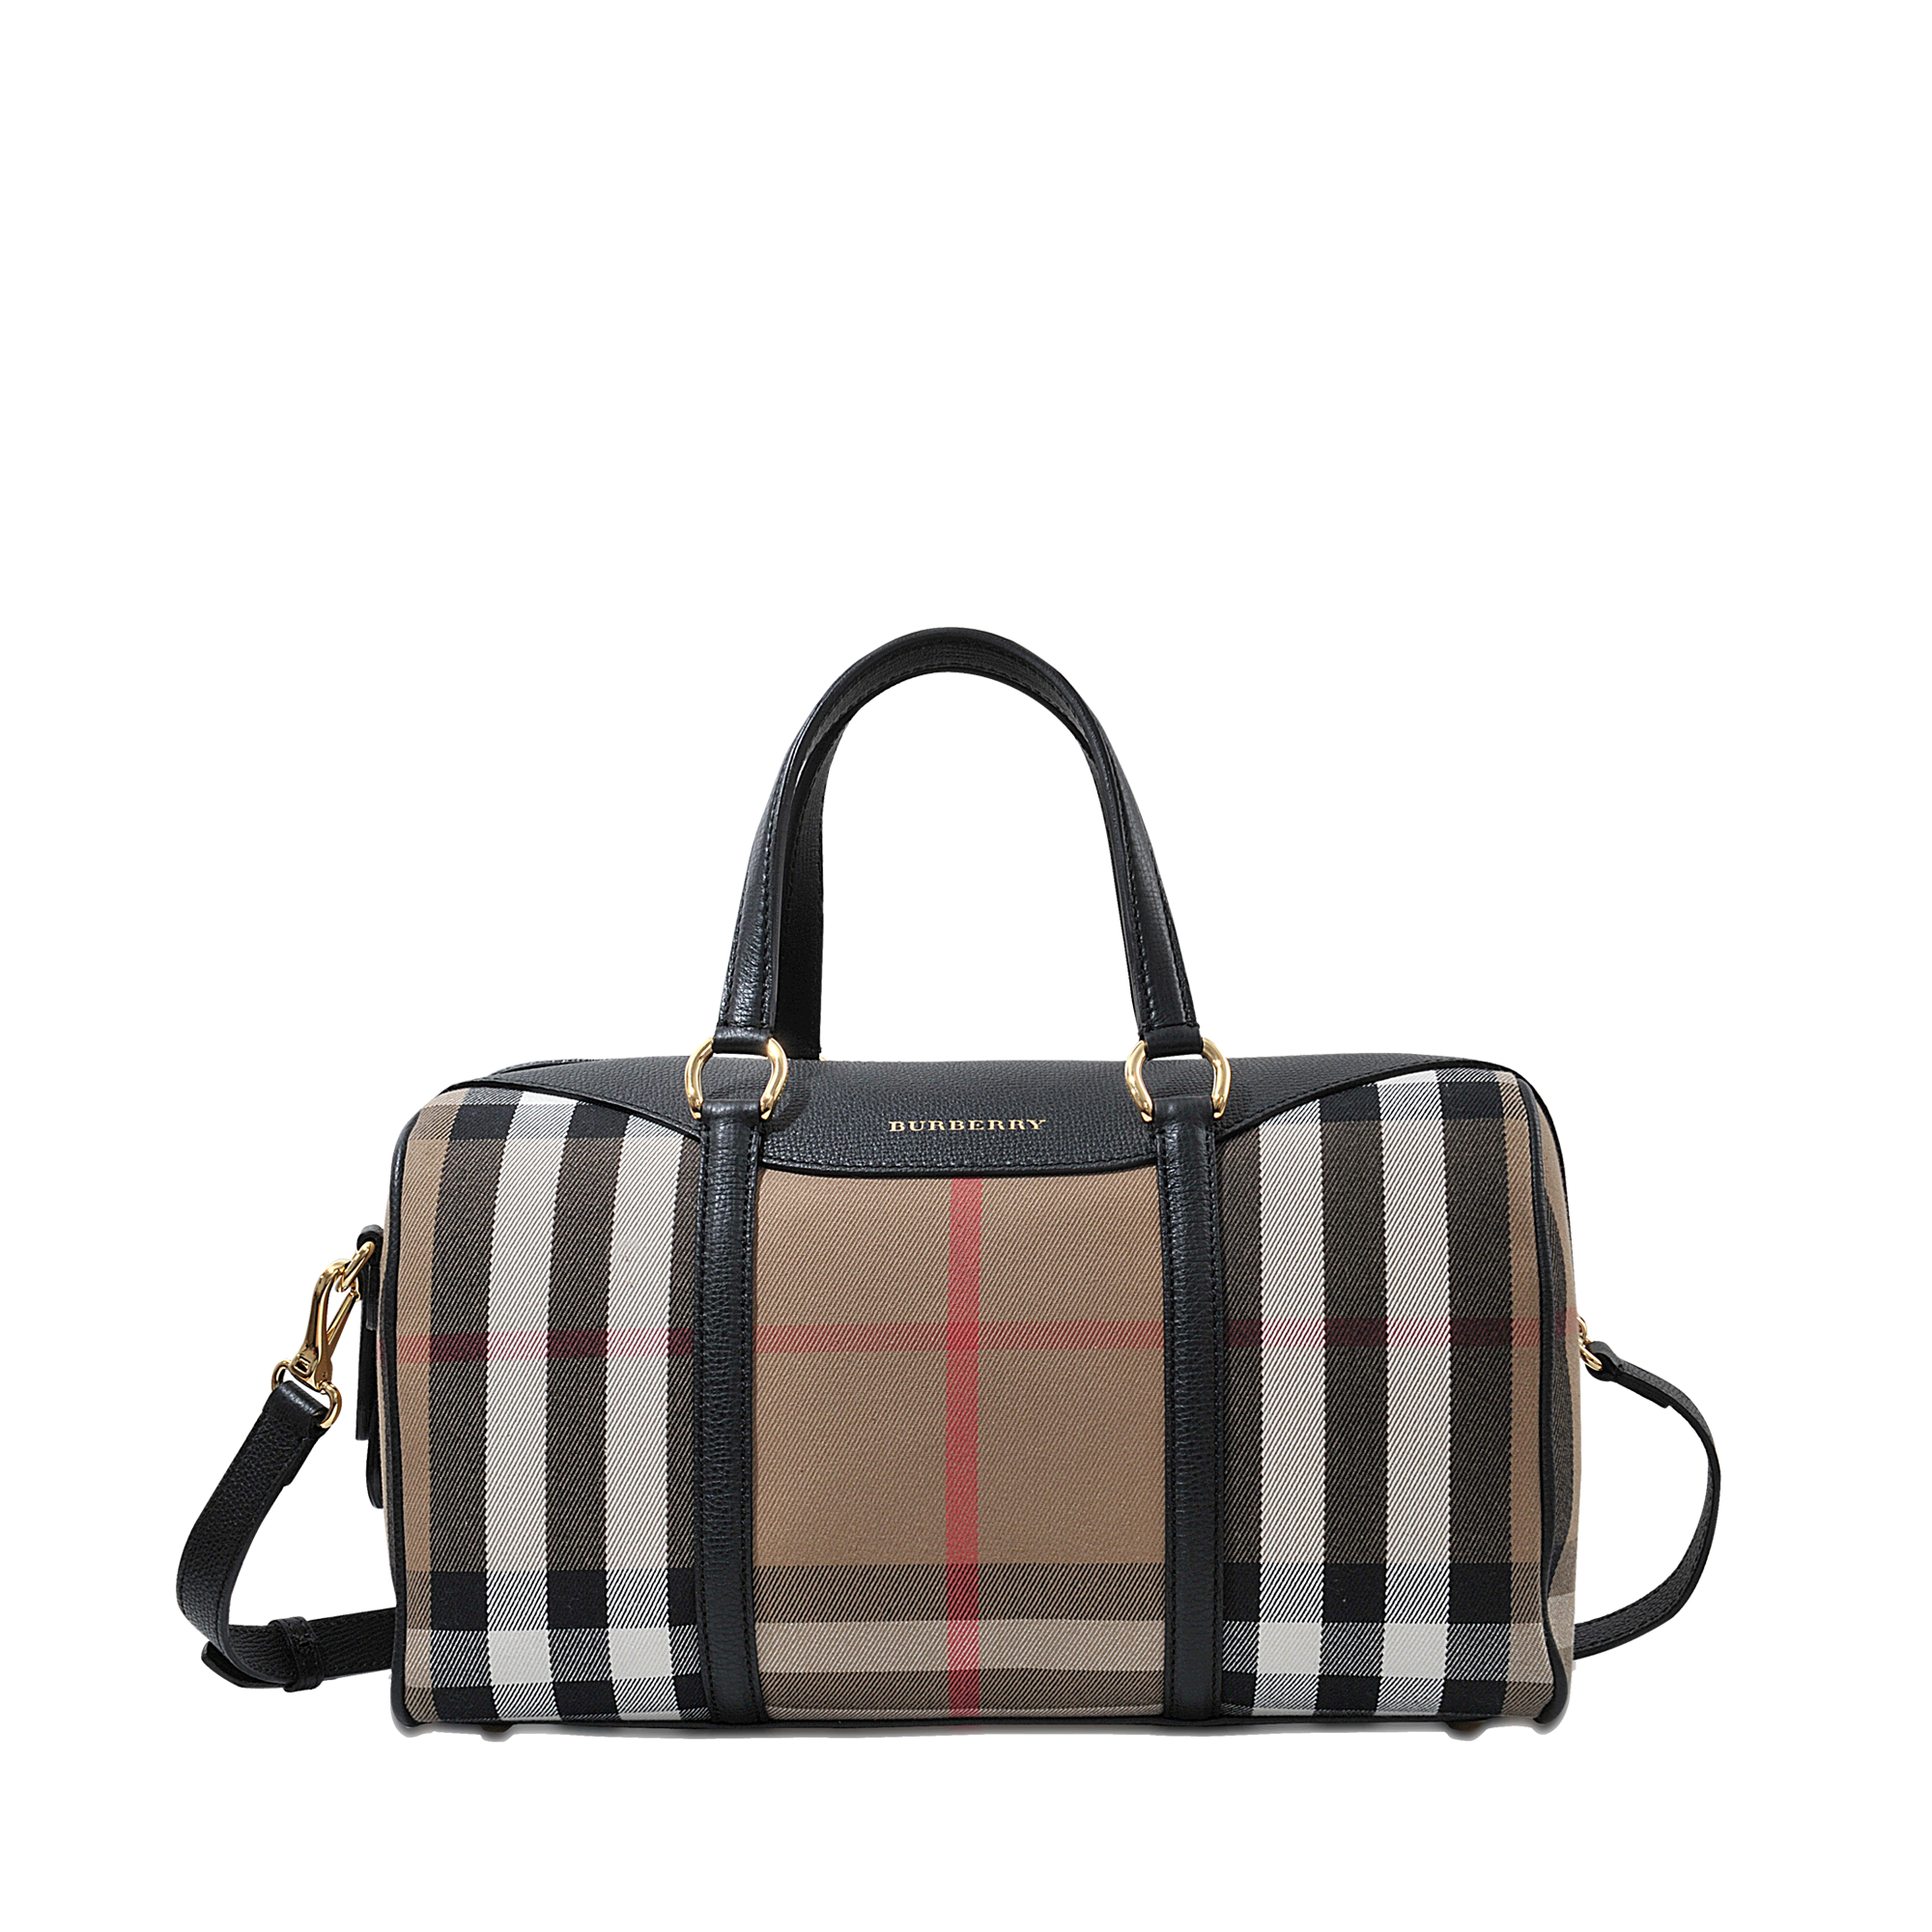 Lyst - Burberry Md Alchester House Check Bag in Black e50ef8f45585